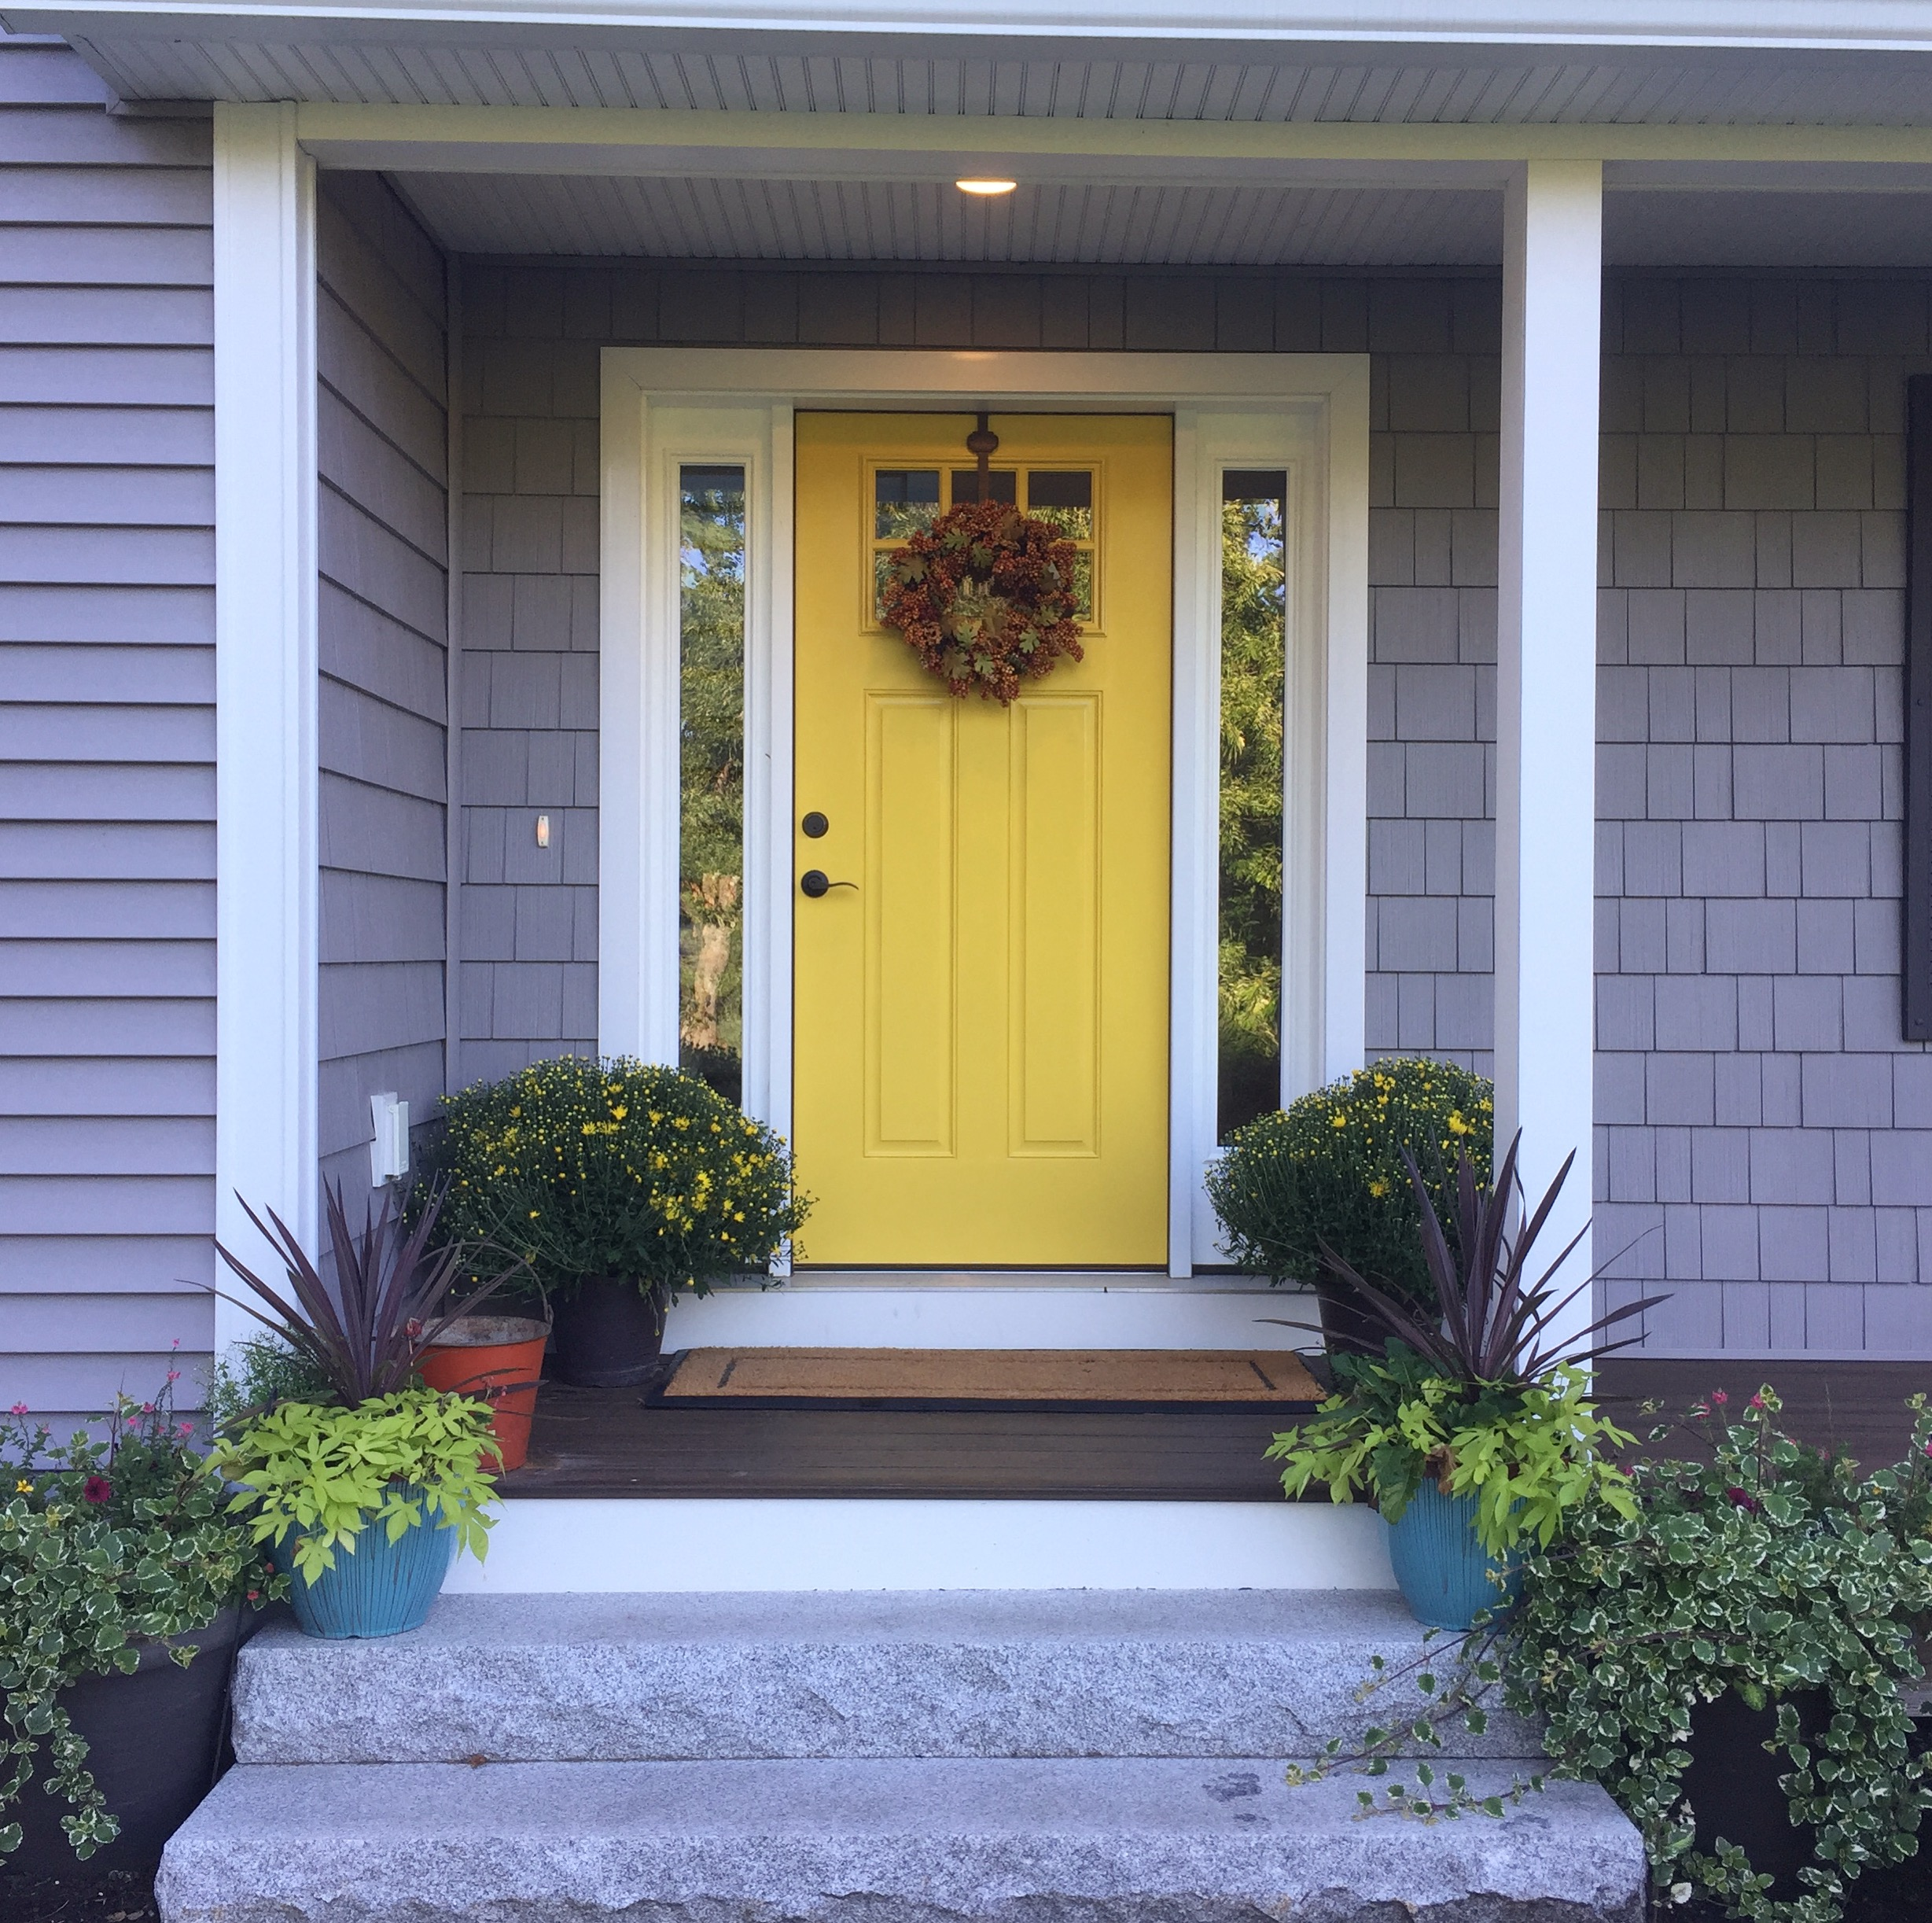 Yellow front door with awesome 9.99 yellow mums from Costco! Not yet in bloom.